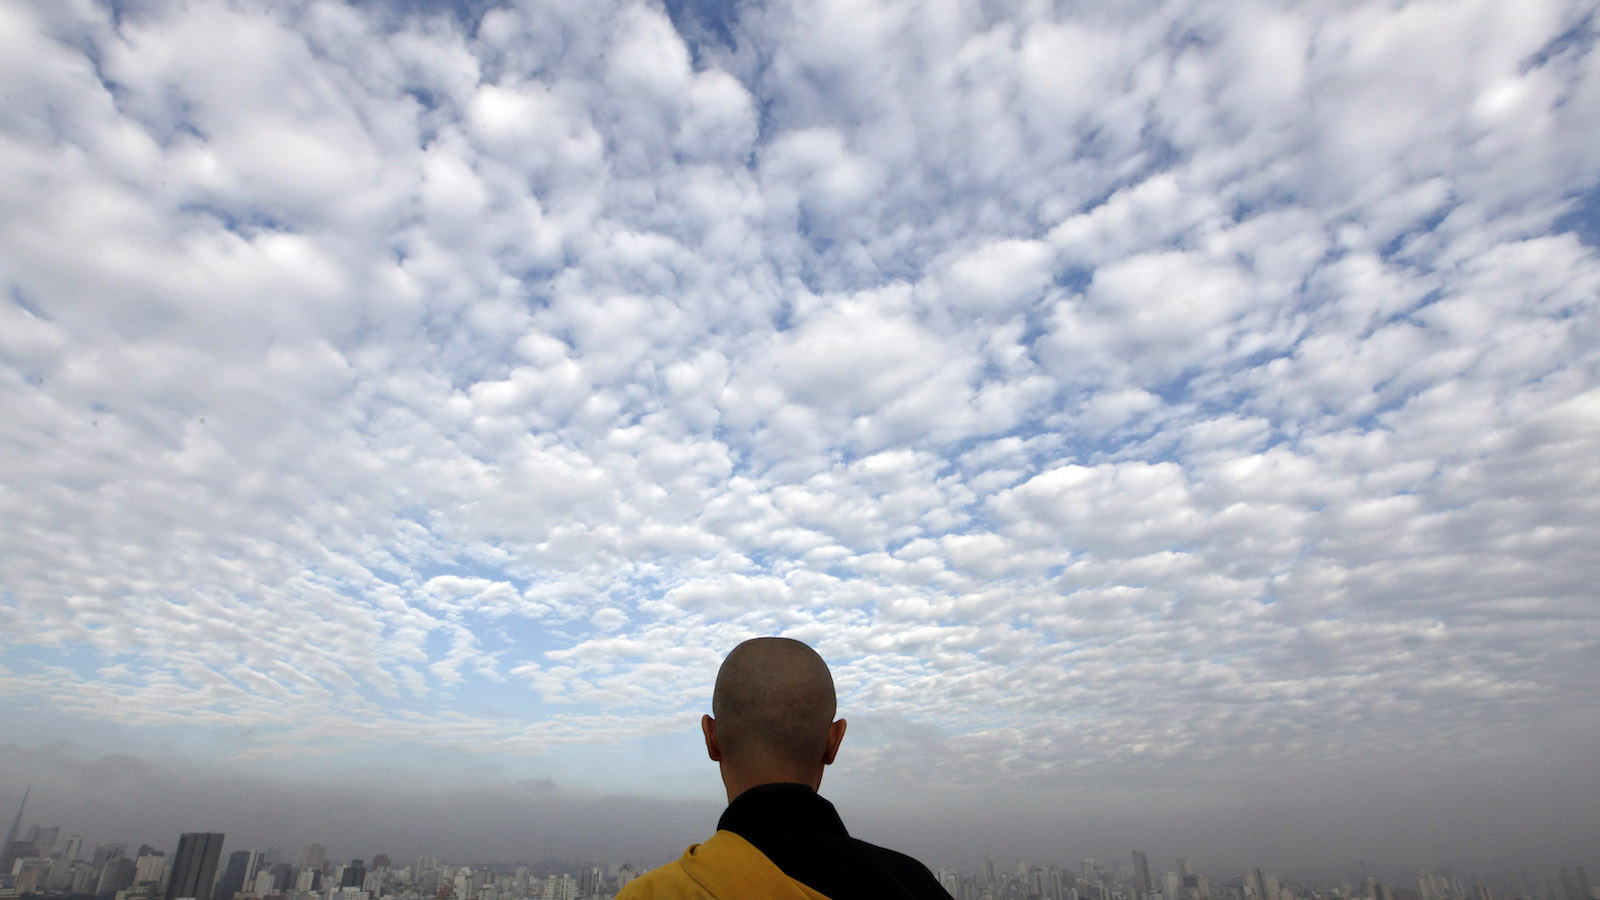 Buddhist monk Jisho Handa from the Busshinji temple, meditates on the helipad of Copan building in downtown Sao Paulo February 18, 2011. Buddhist monks from the Busshinji temple in Sao Paulo meditate once a month on top of the 37-story high Copan building, one of the tallest in Sao Paulo. Monks want to take meditation from the temple to the streets and they consider Copan building, created by renowned Brazilian architect Oscar Niemeyer, a zen Buddhist mountain in the middle of the city. REUTERS/Nacho Doce (BRAZIL - Tags: RELIGION CITYSCAPE SOCIETY) - RTR2ISPY